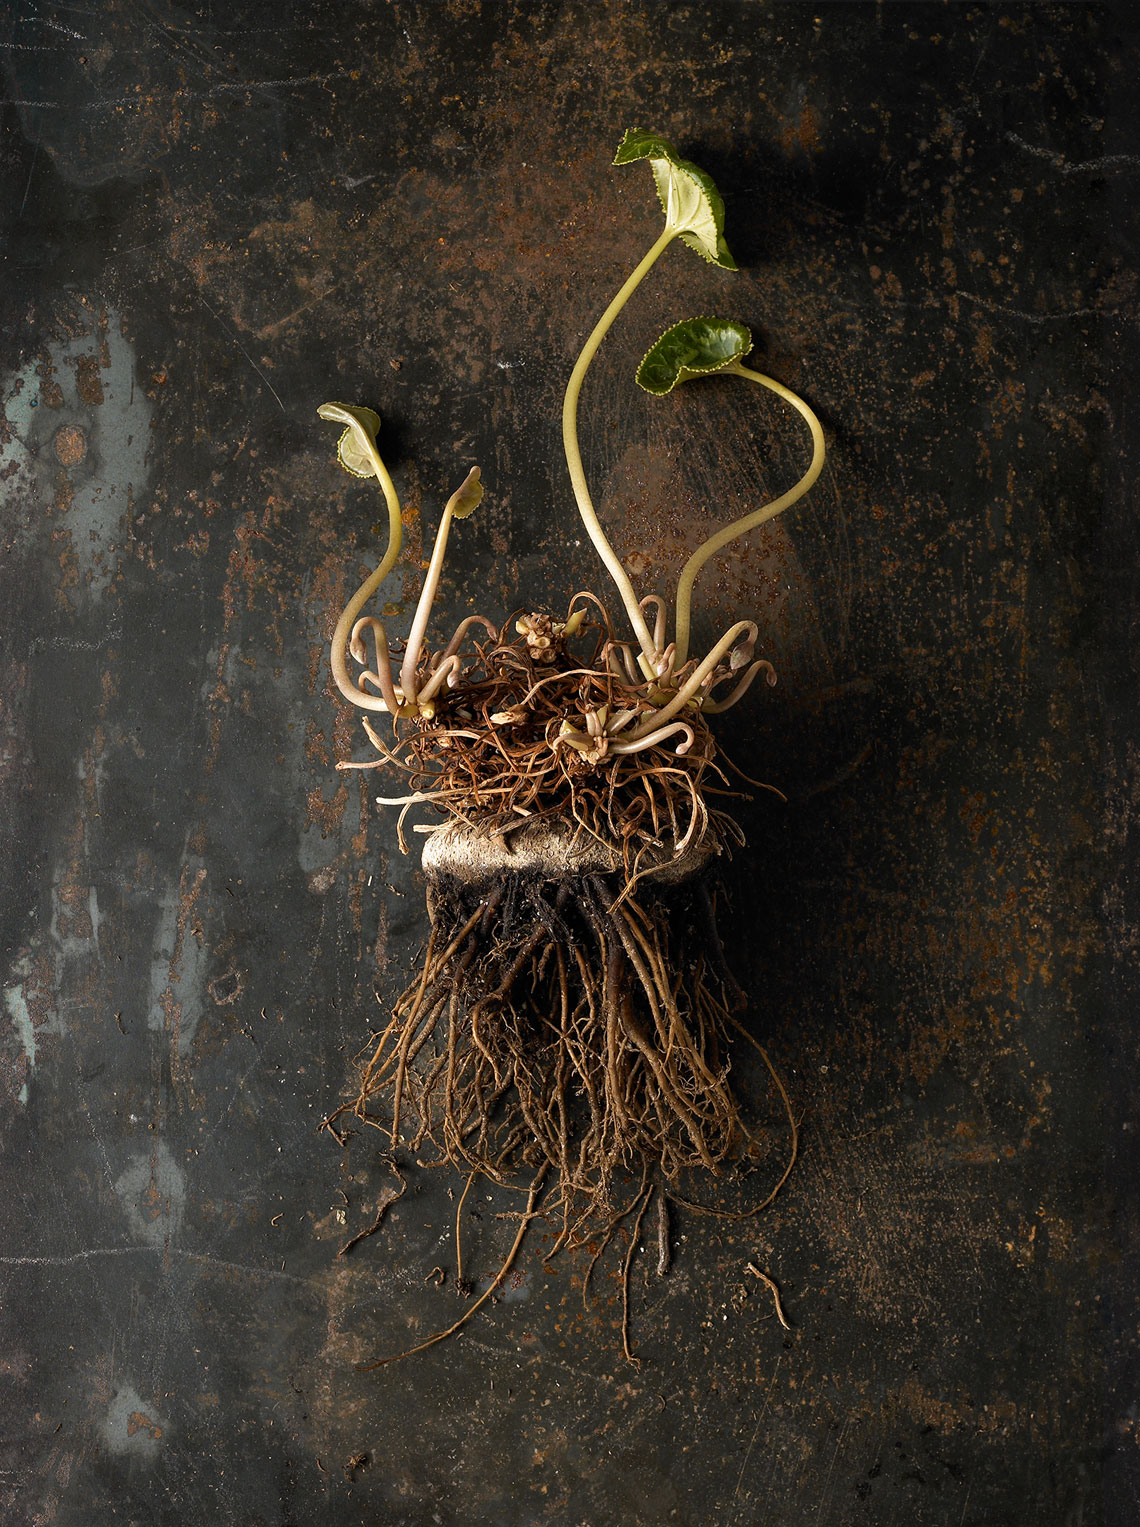 roots-019-as-Smart-Object-1